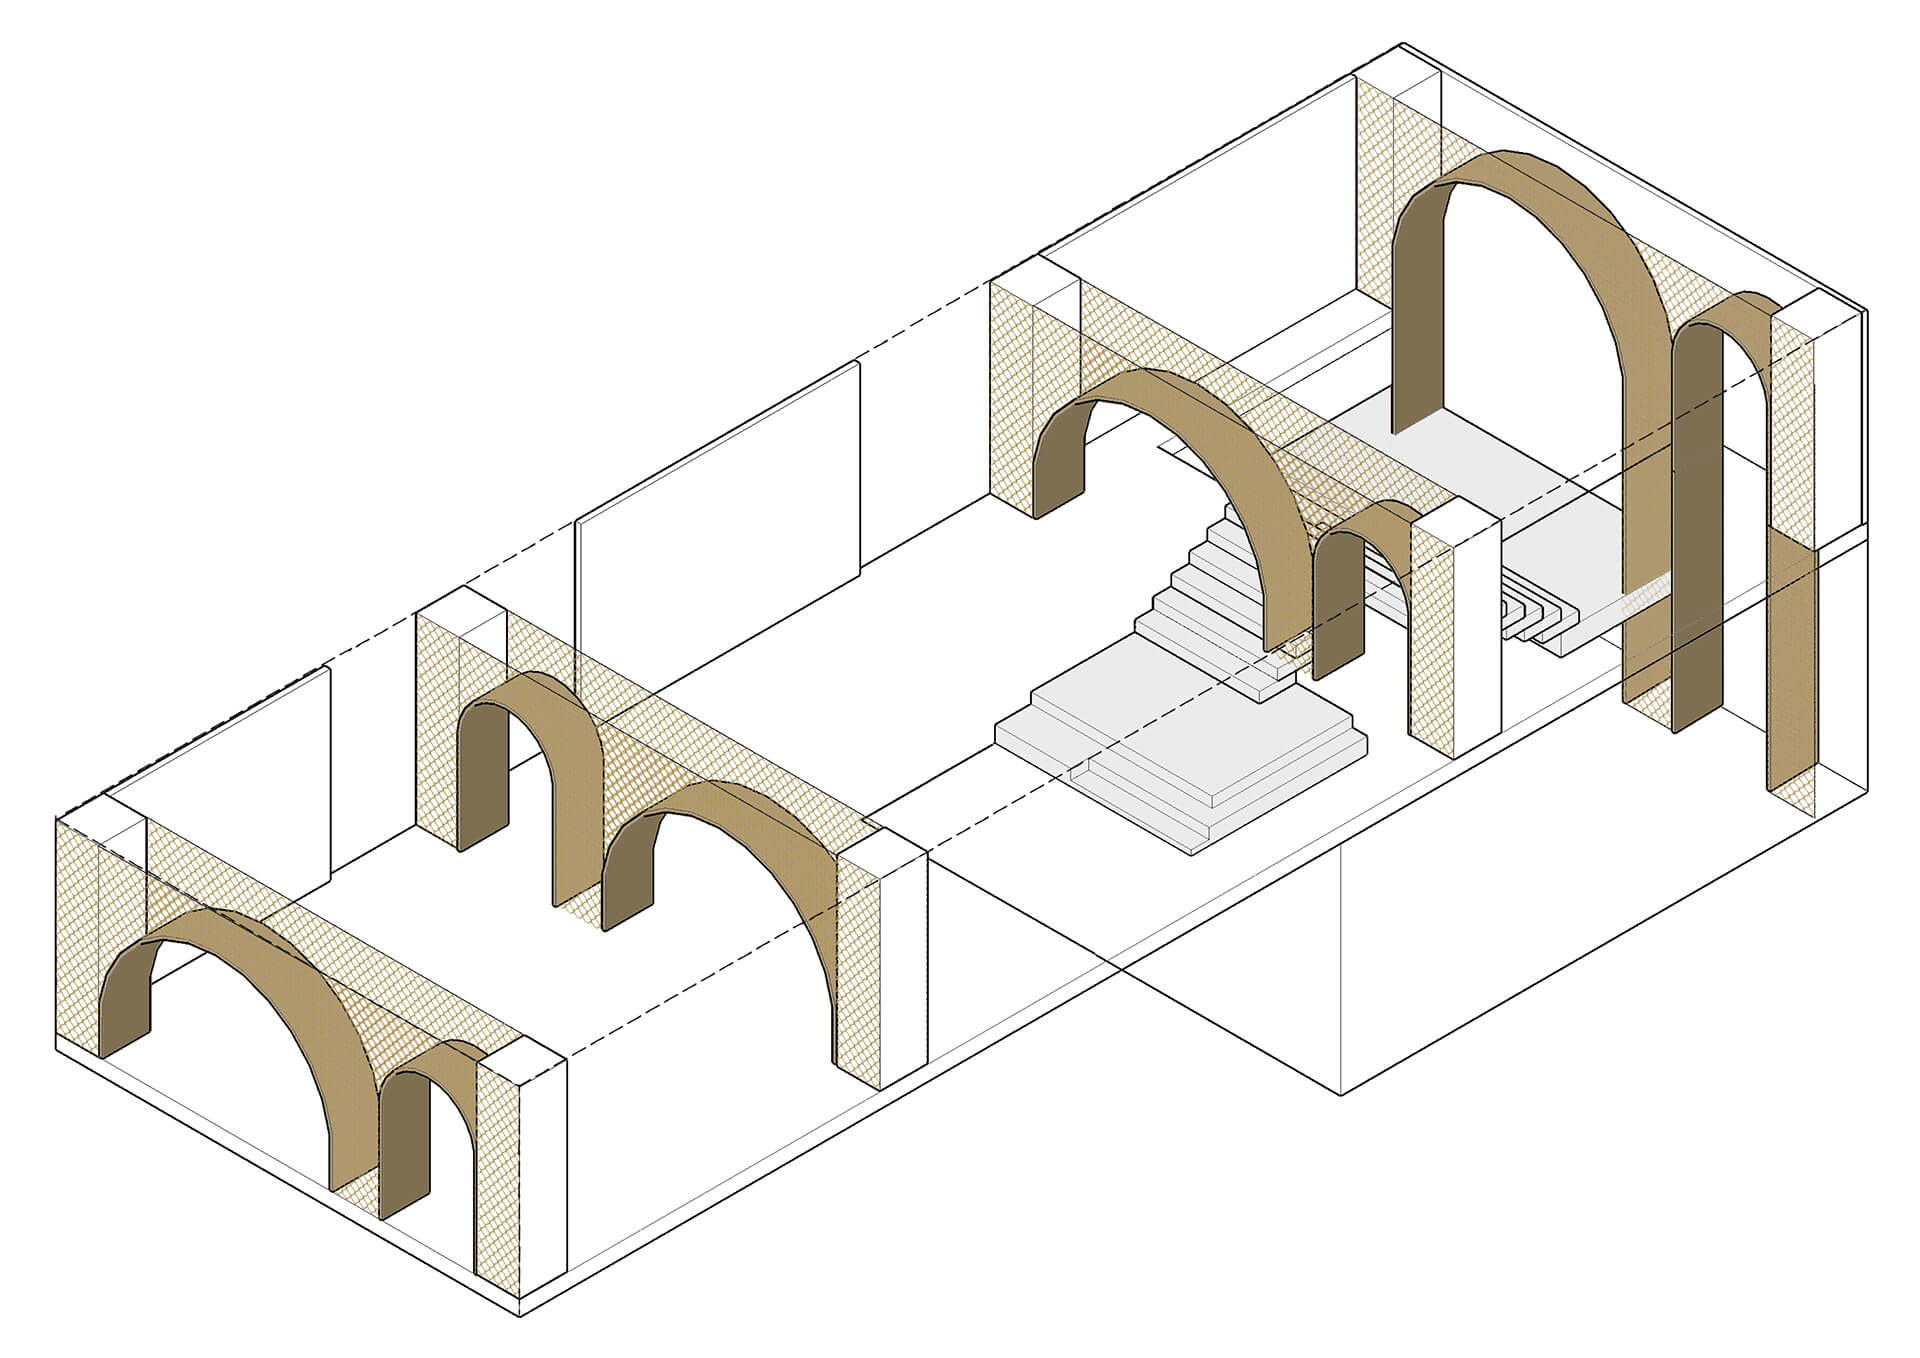 Visualisation of arches in layers | House of Madison designed by via. | STIRworld